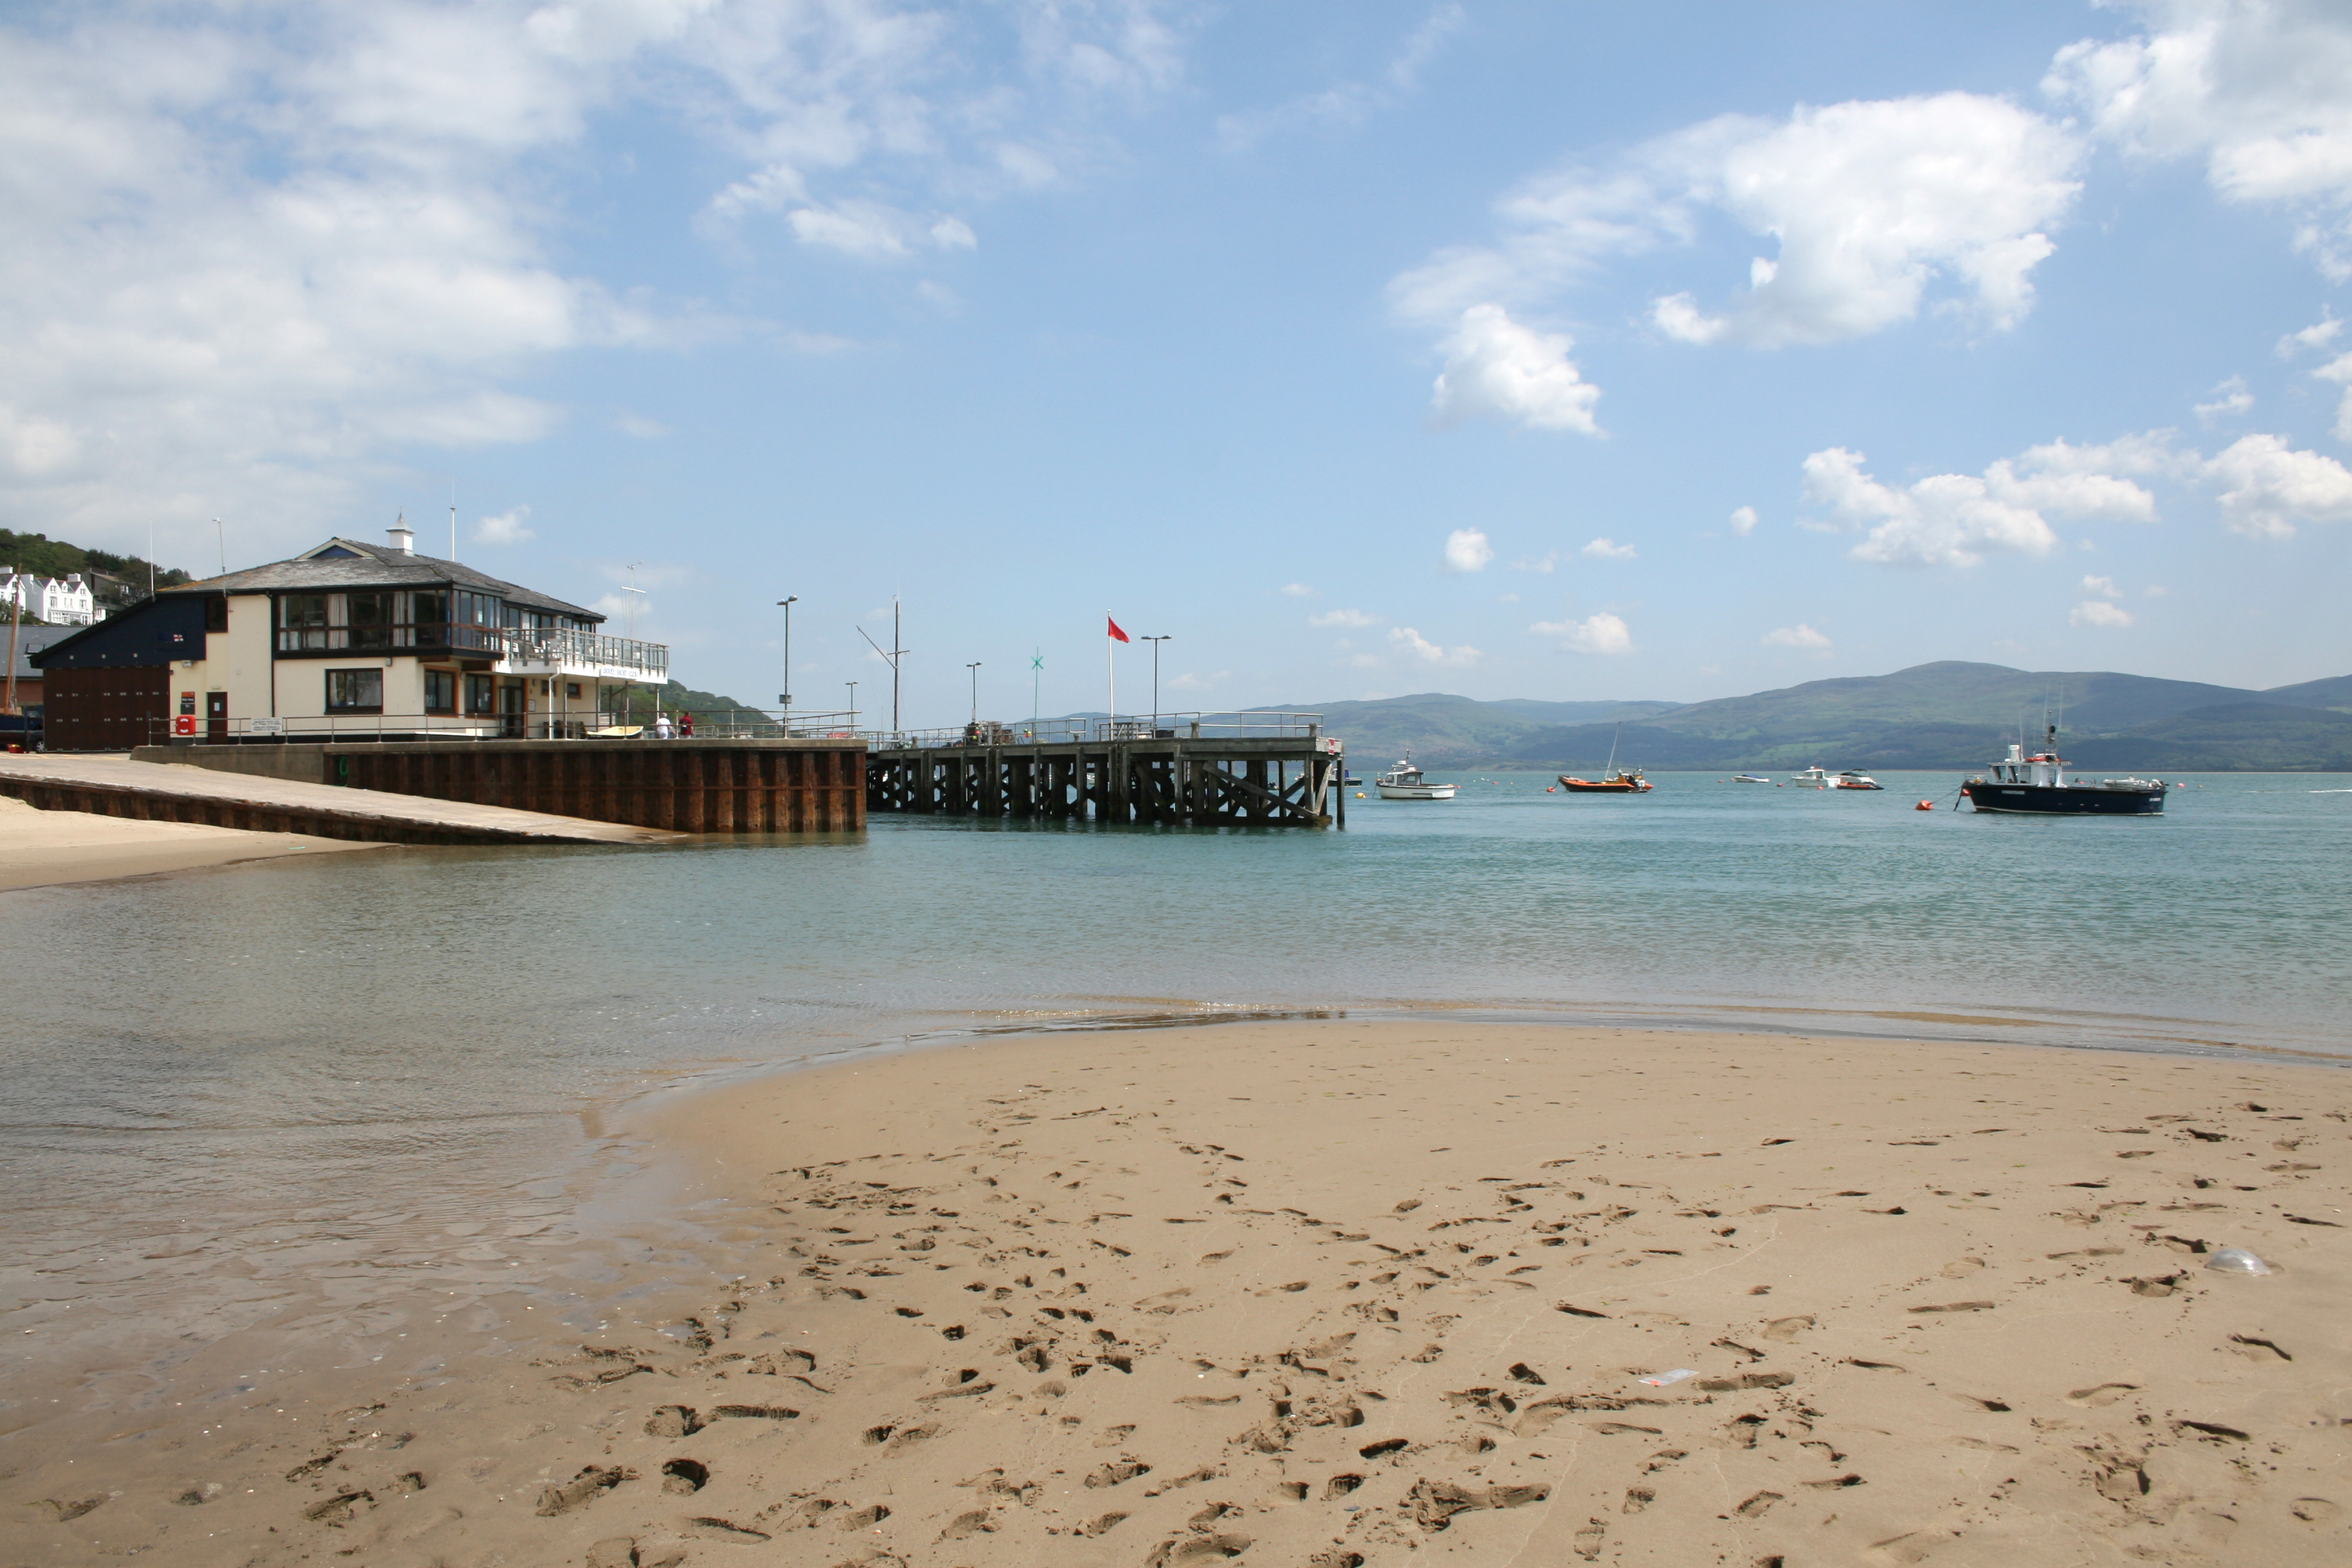 A view of Aberdovey pier from beach